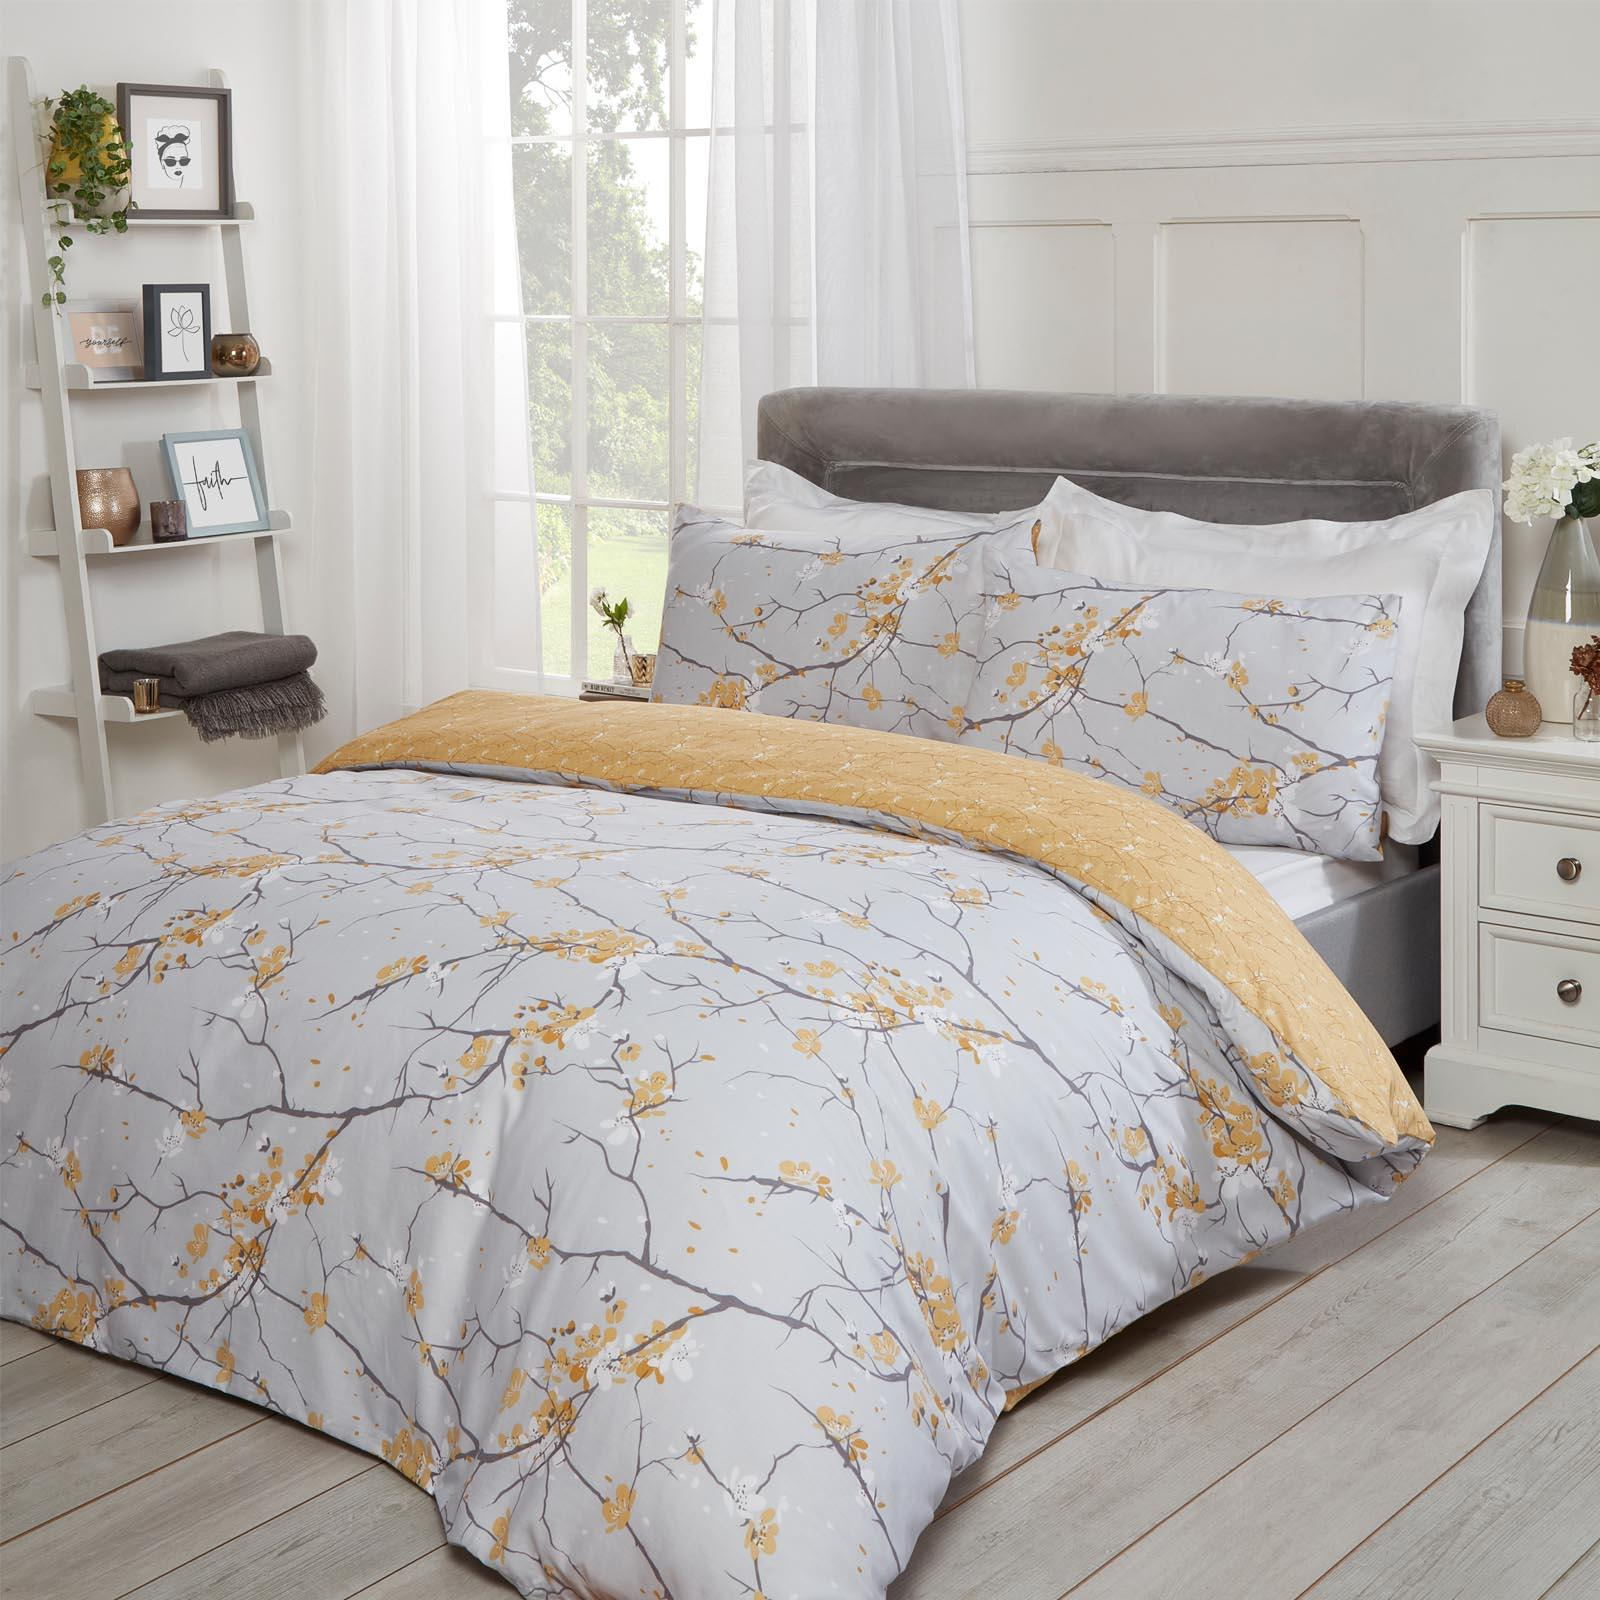 thumbnail 20 - Dreamscene Spring Blossoms Duvet Cover with Pillowcases Bedding Set Blush Ochre